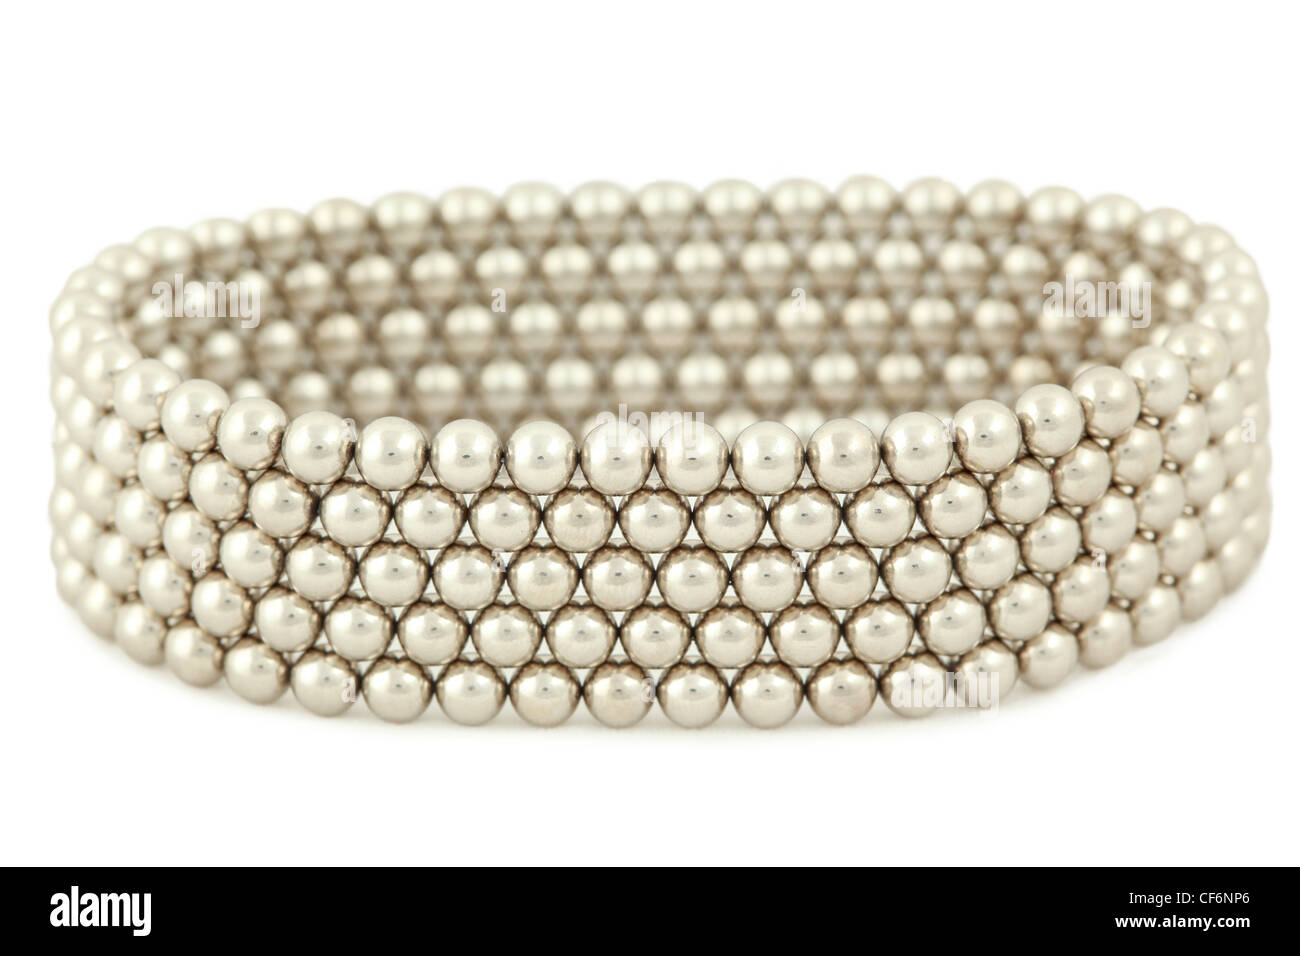 Bangle from silvery beads lies on  white background - Stock Image